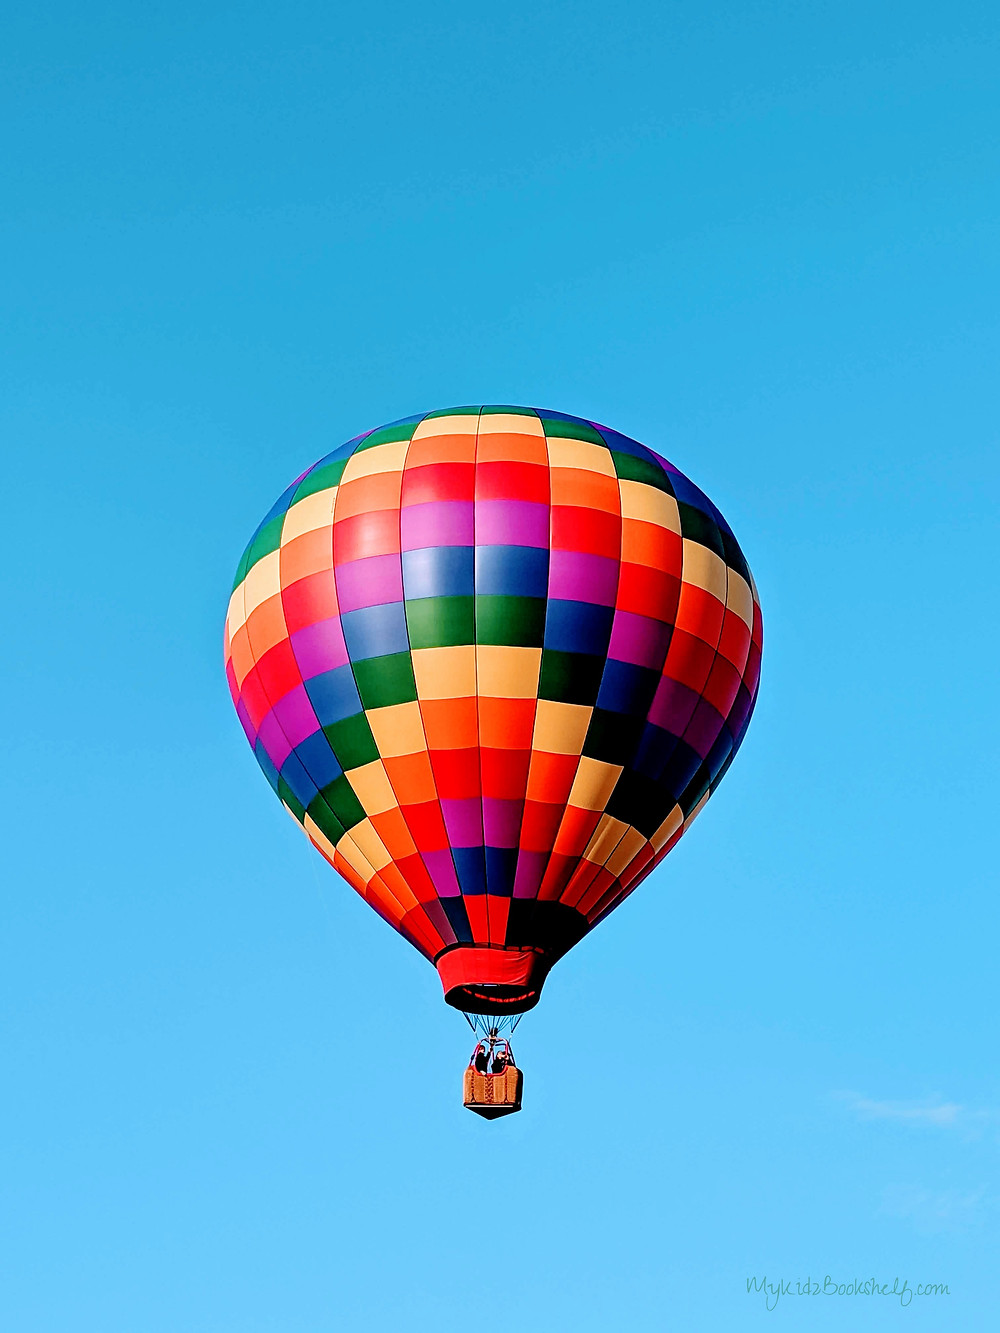 Adirondack-hot-air-balloon-festival-unicorn-A-fun-start-to-fall-at-the-Adirondack-hot-air-balloon-festival-rainbow-balloon